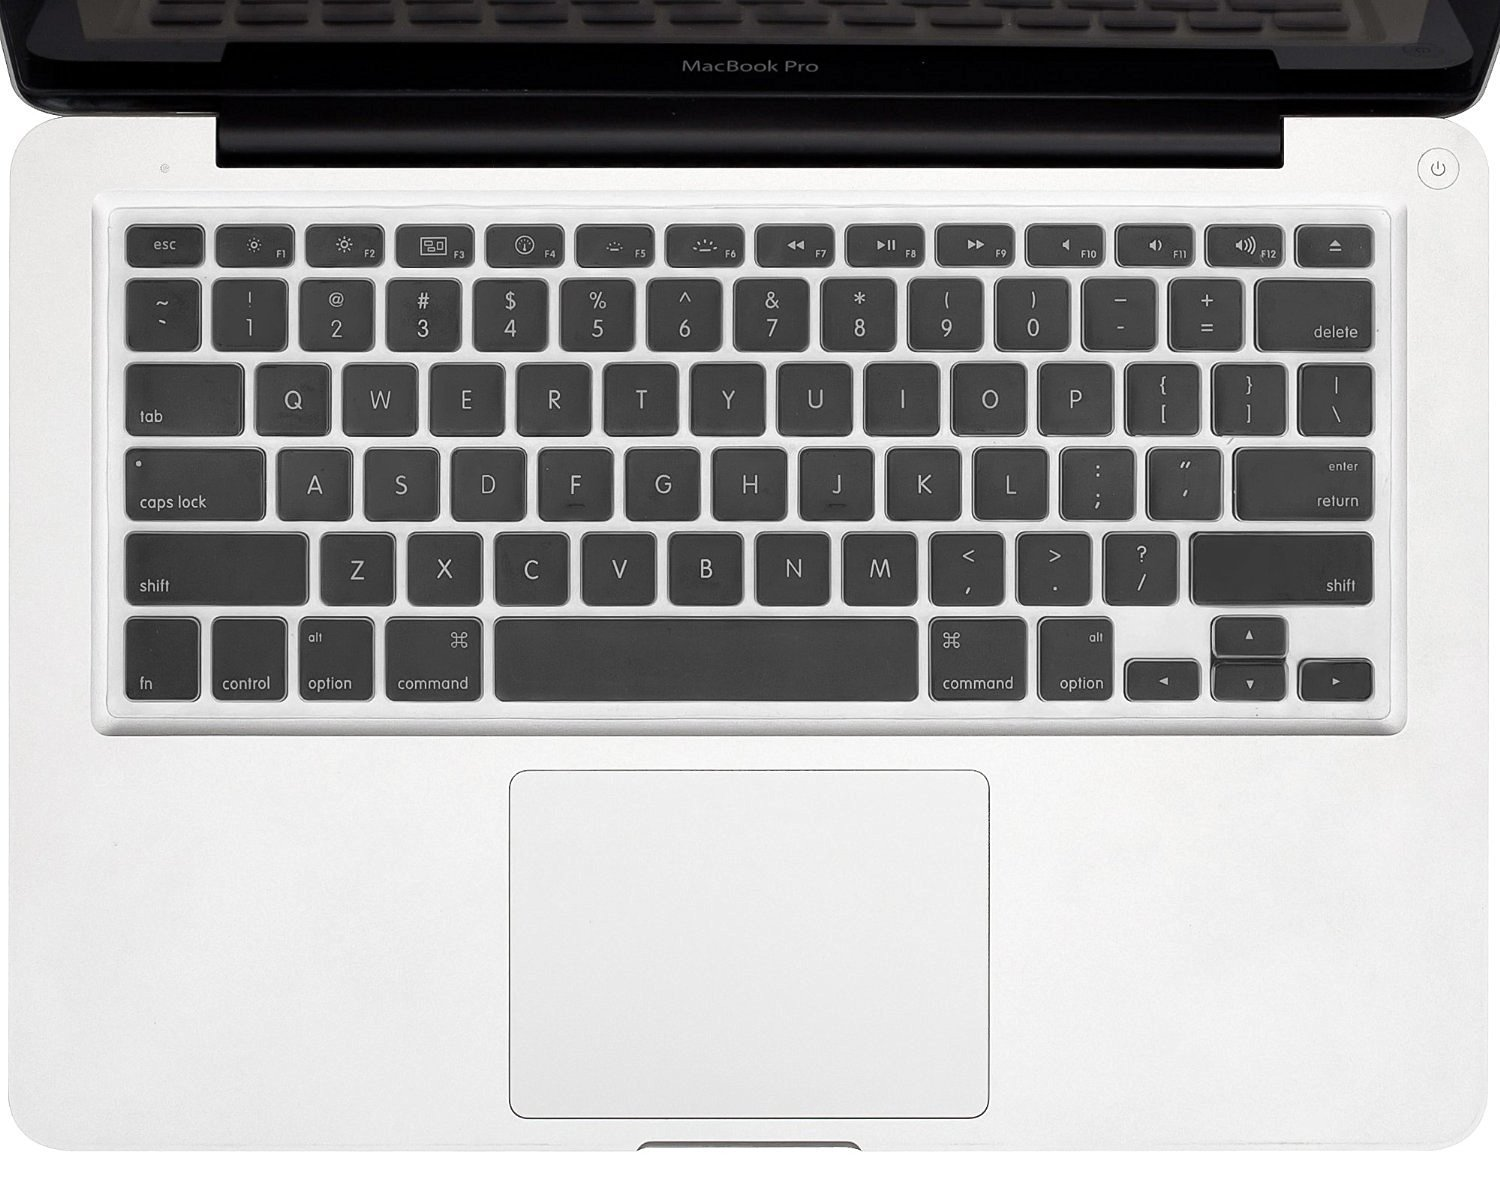 "Tsmine 2Pcs Retina 12-inch Transparent-CLEAR Keyboard Cover Protector Silicone Skin for MacBook 12"" with Retina Display ,Transparent-CLEAR"